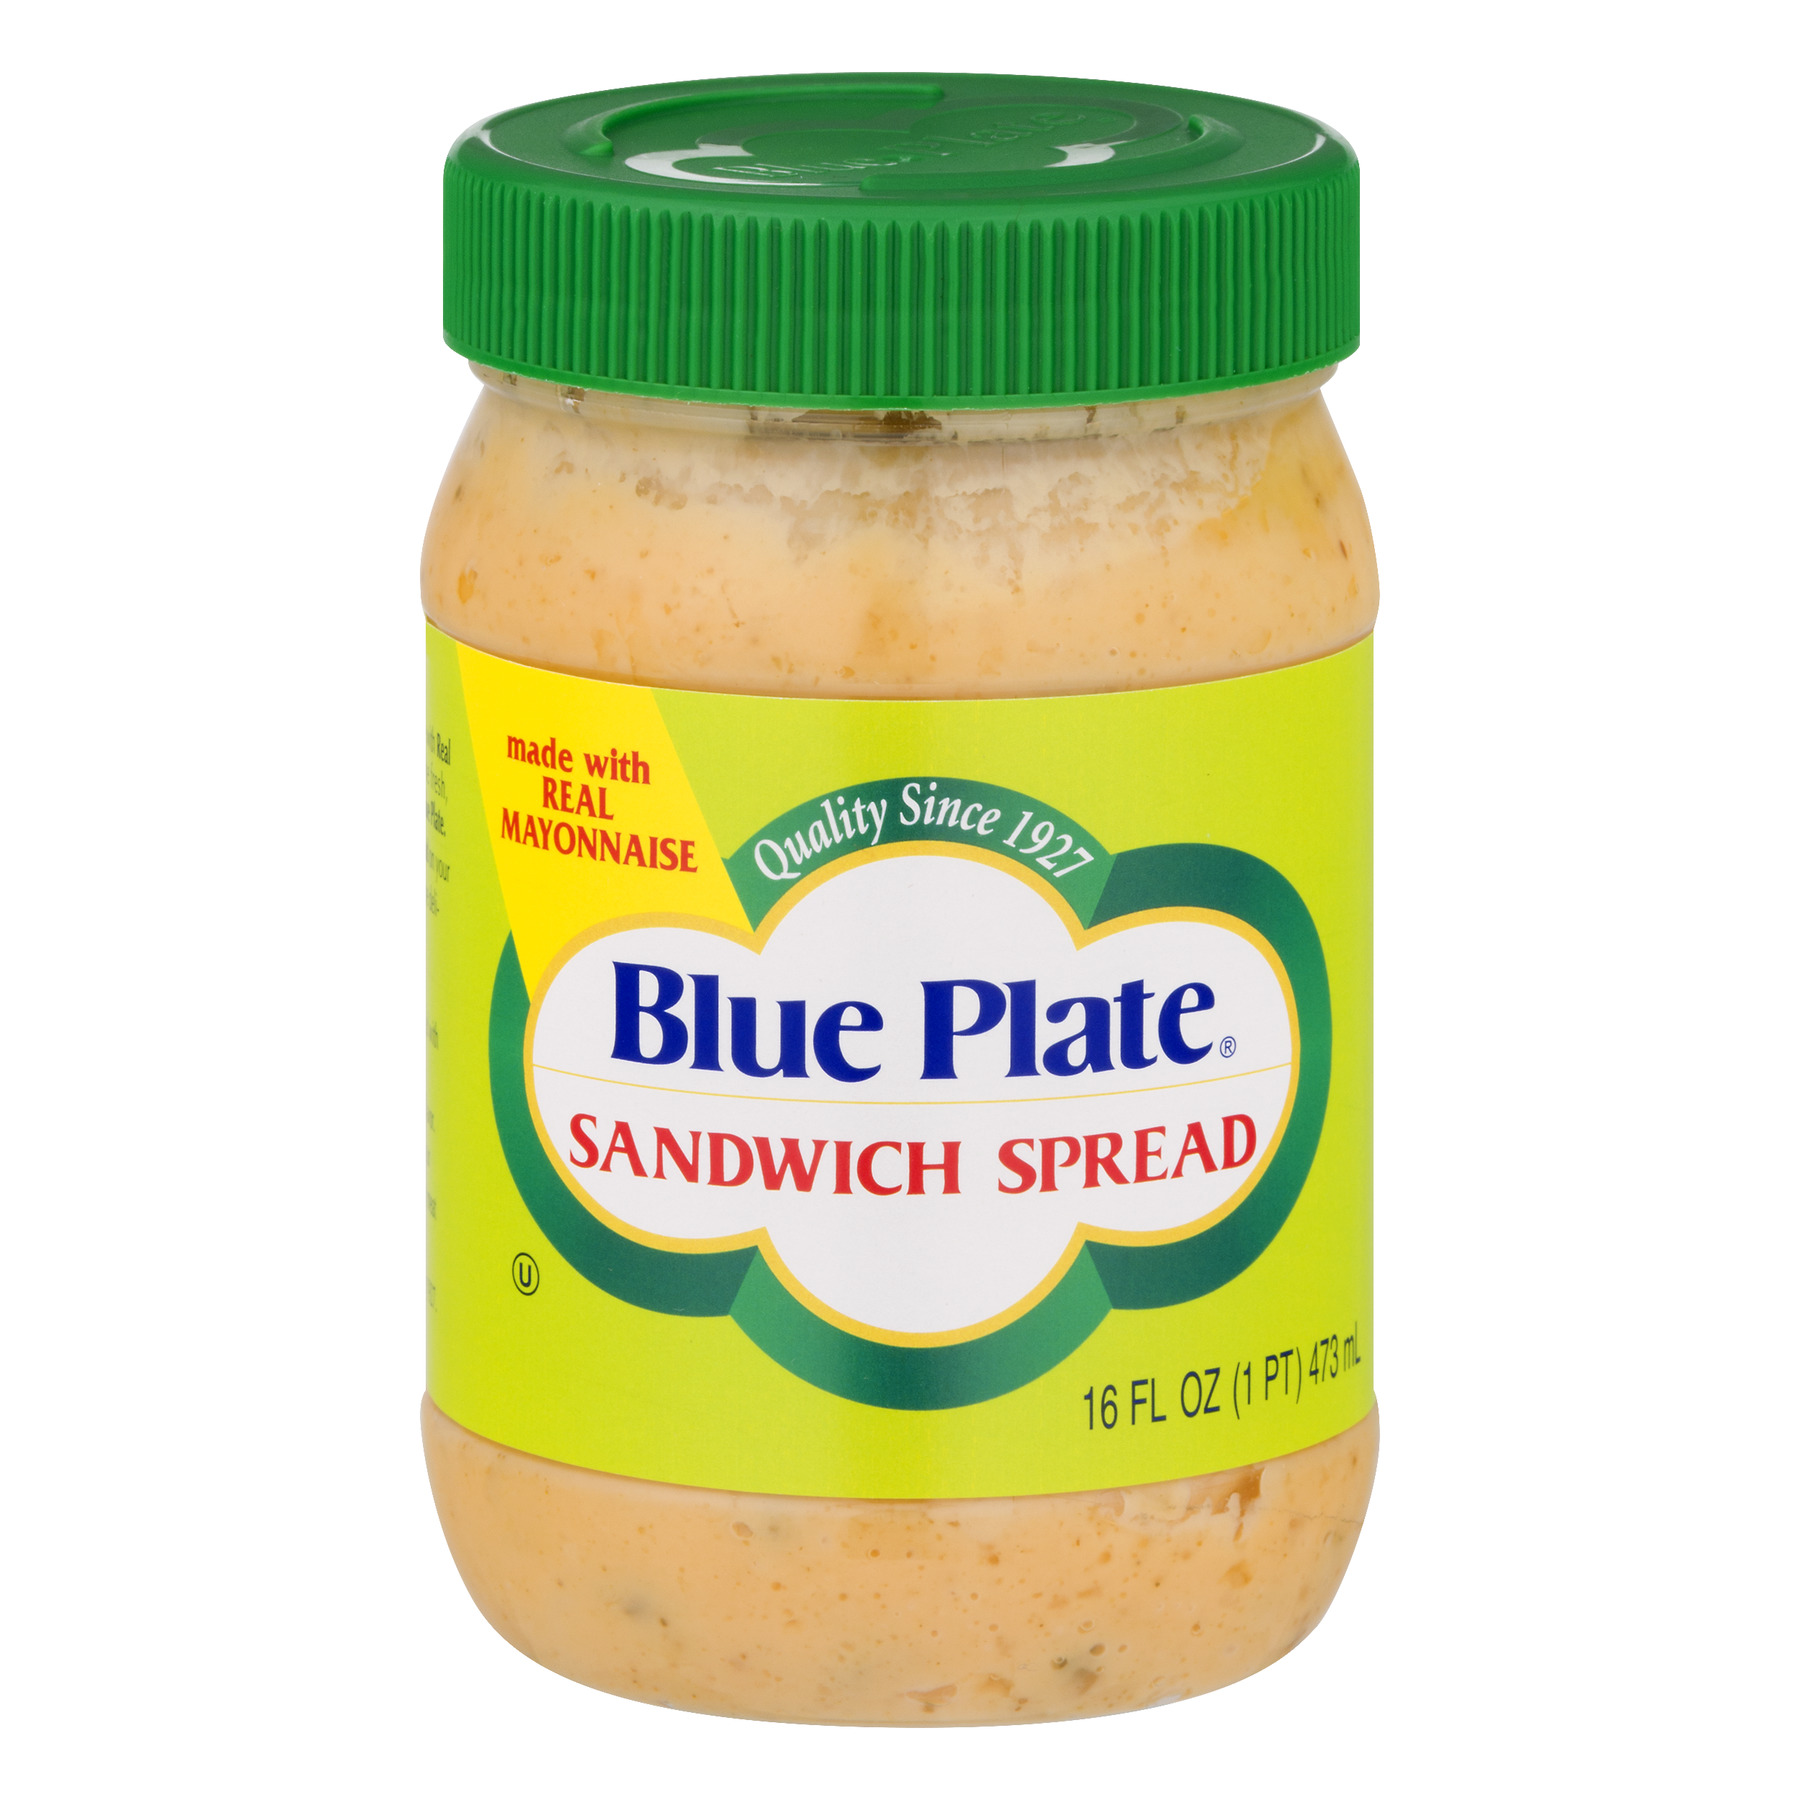 Blue Plate Sandwich Spread, 16.0 FL OZ